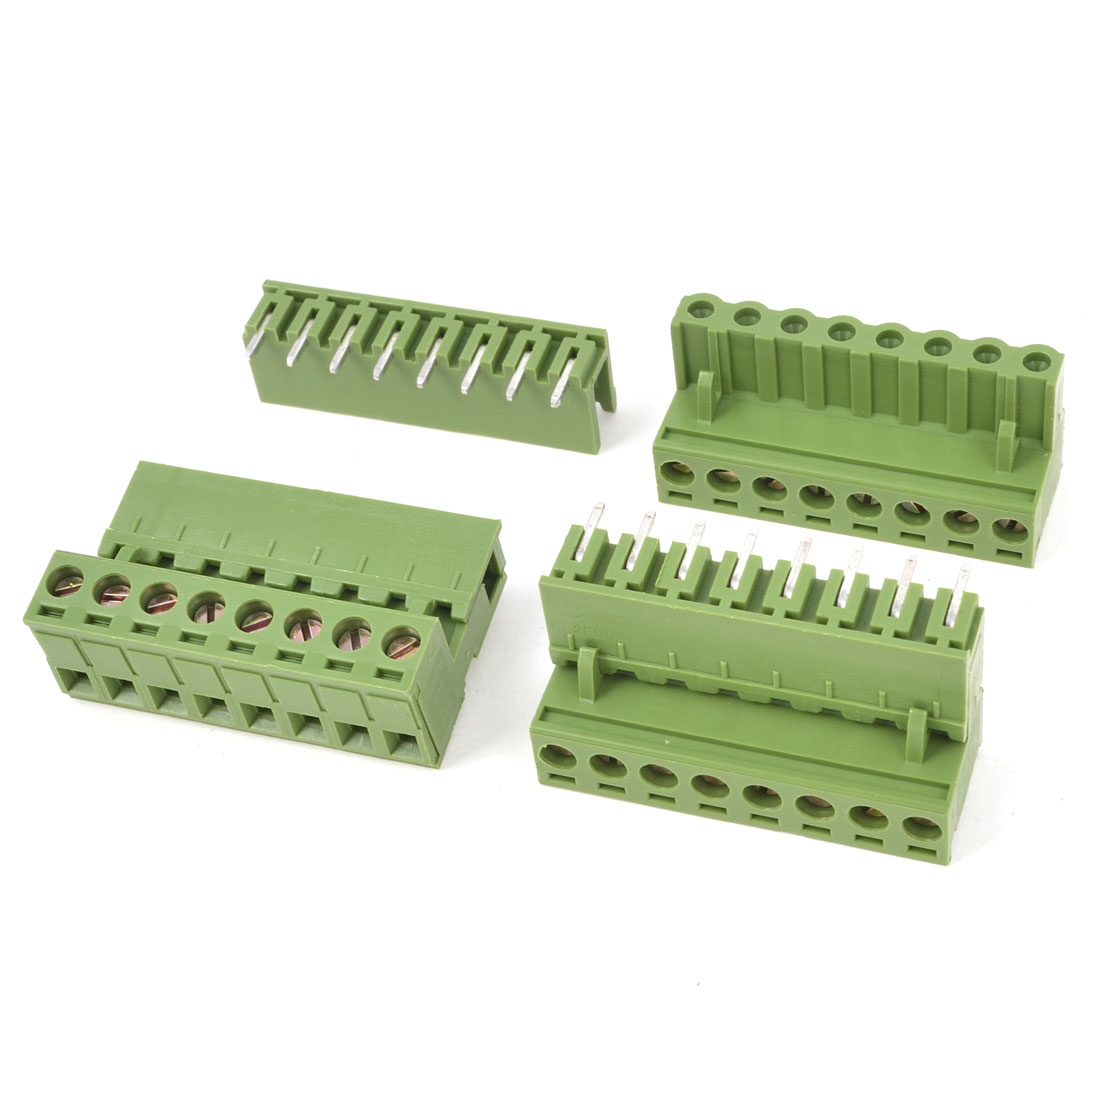 300V 10A 8 Way Pin PCB Screw Terminal Block Connector 5.08mm Pitch Army Green 3 Pcs